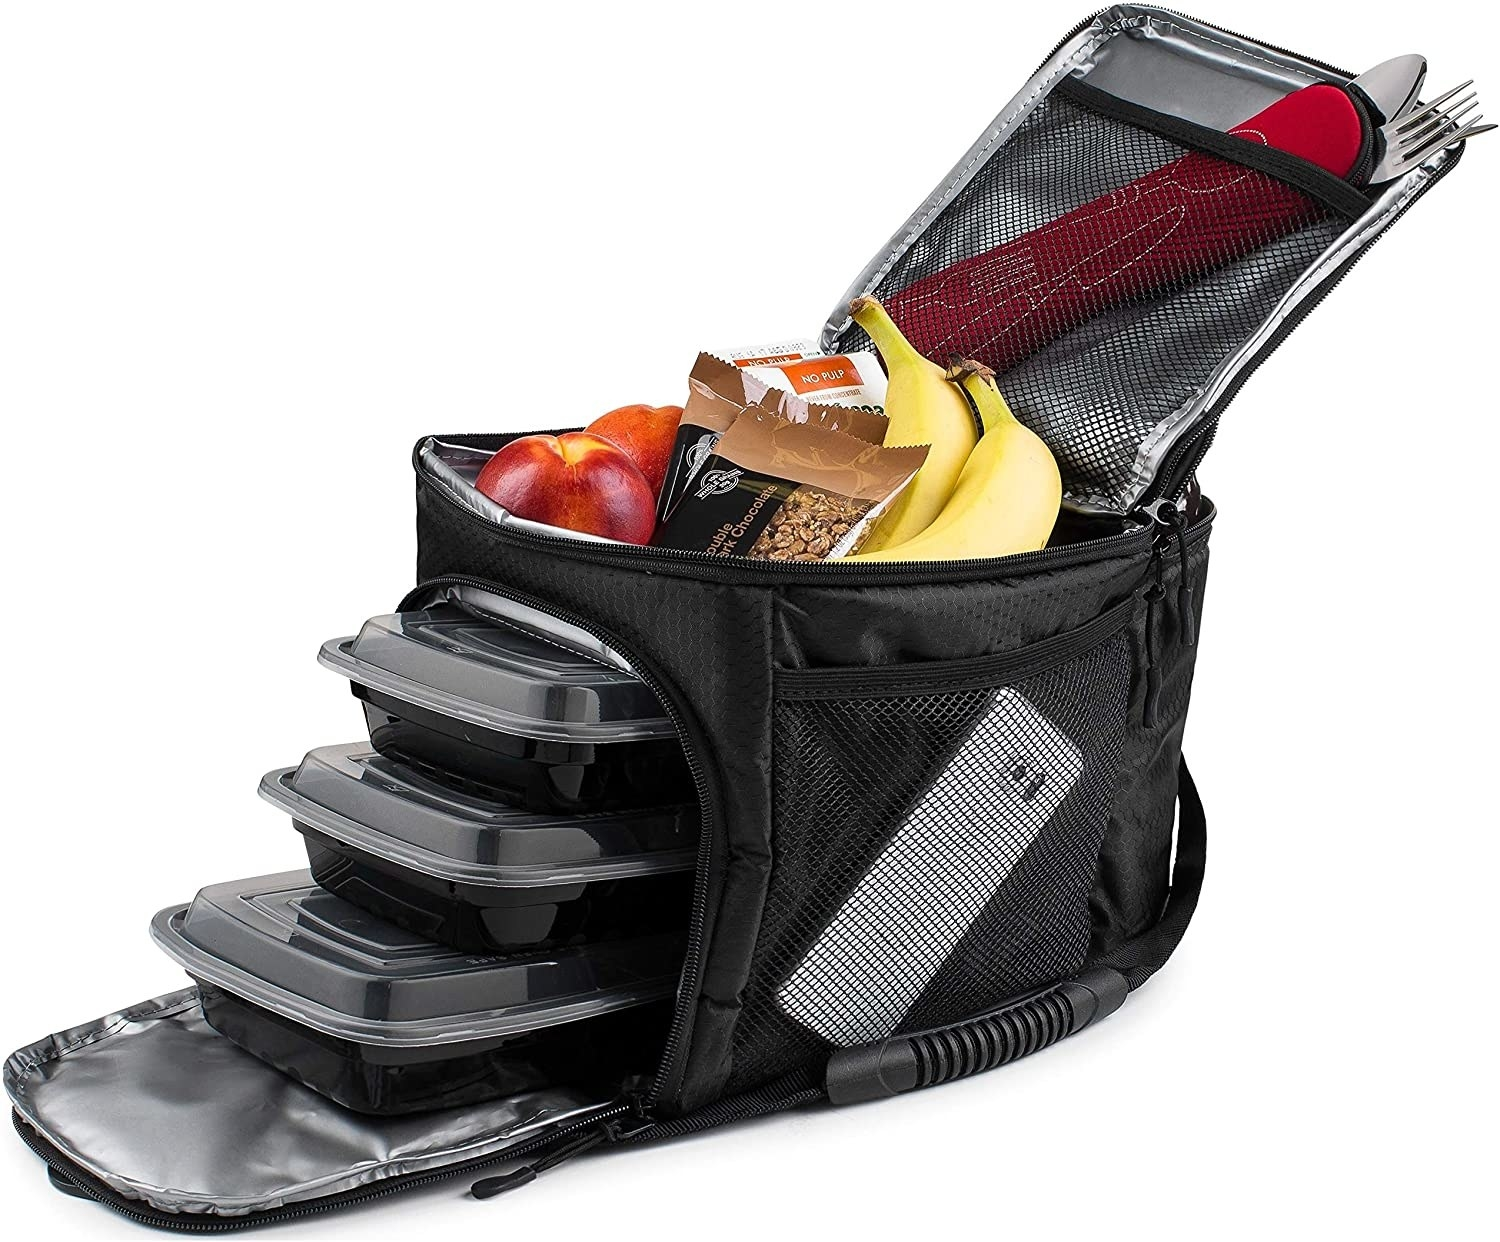 Black insulated bag with tupperware and snacks and a phone inside the pockets